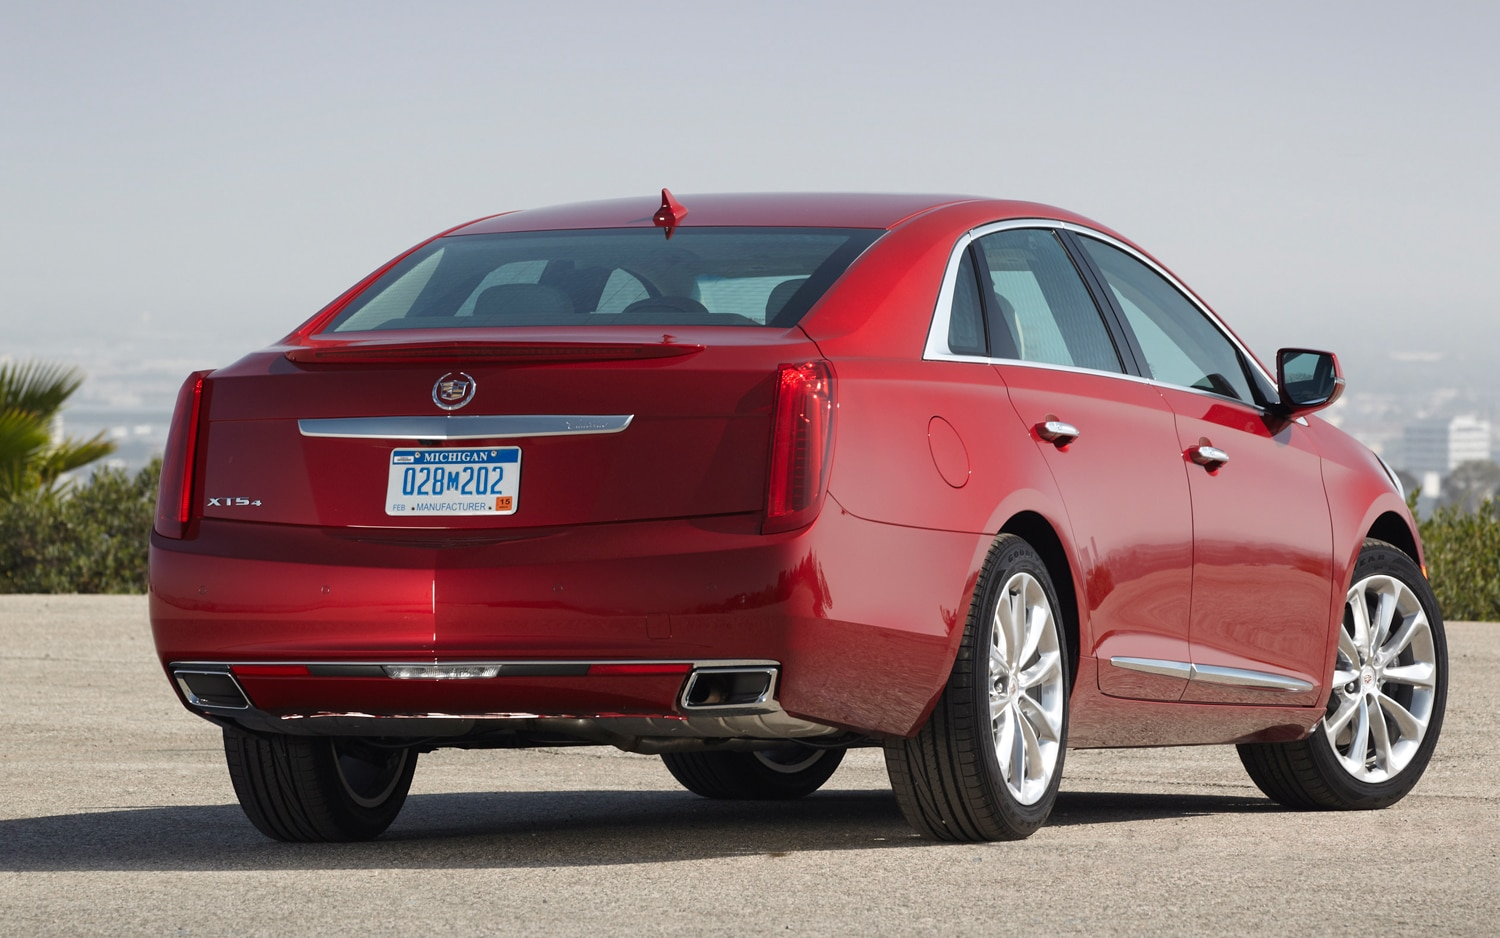 First Drive: 2013 Cadillac XTS - Automobile Magazine